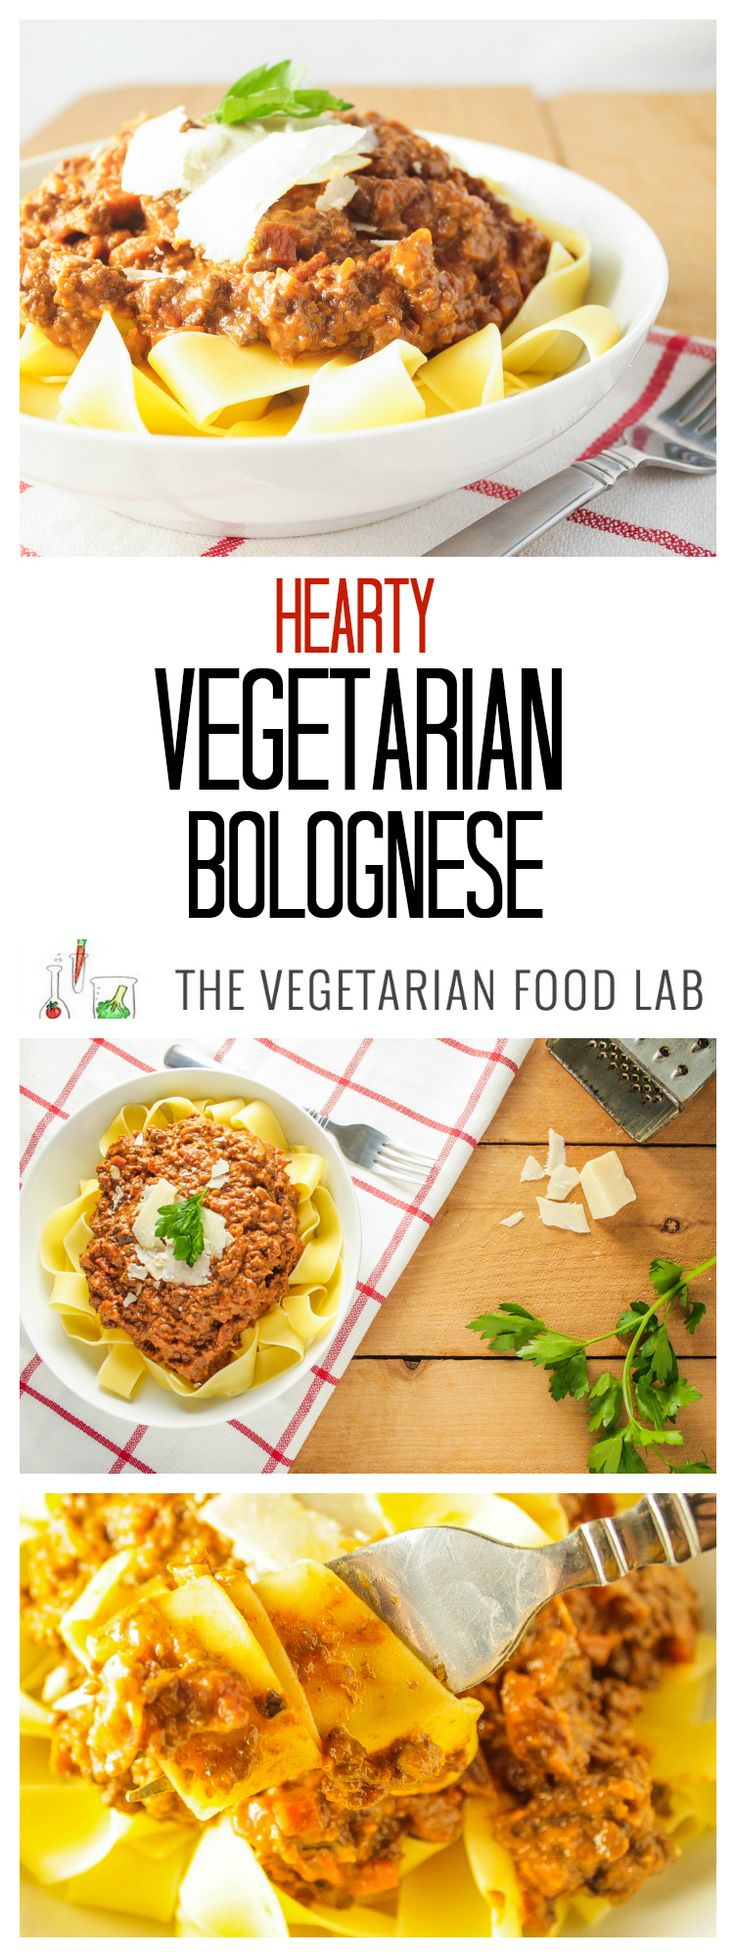 21 best the vegetarian food lab images on pinterest food lab hearty vegetarian bolognese vegetarian bolognesehealthy vegetarian mealsbolognese saucefood labyummy forumfinder Gallery